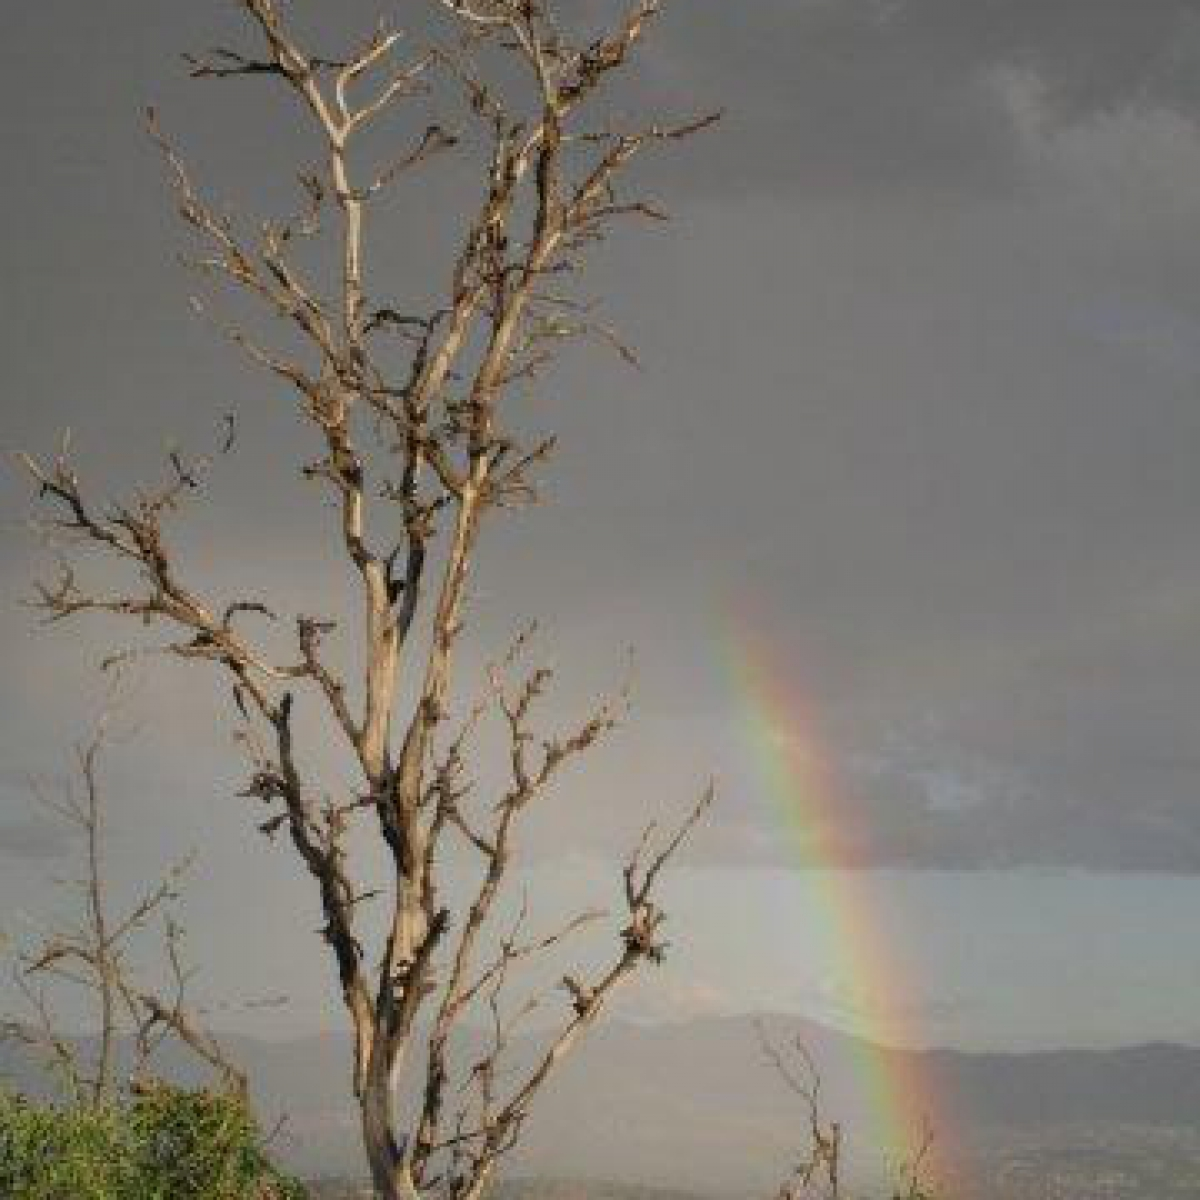 Rainbow over Tuggeranong Valley